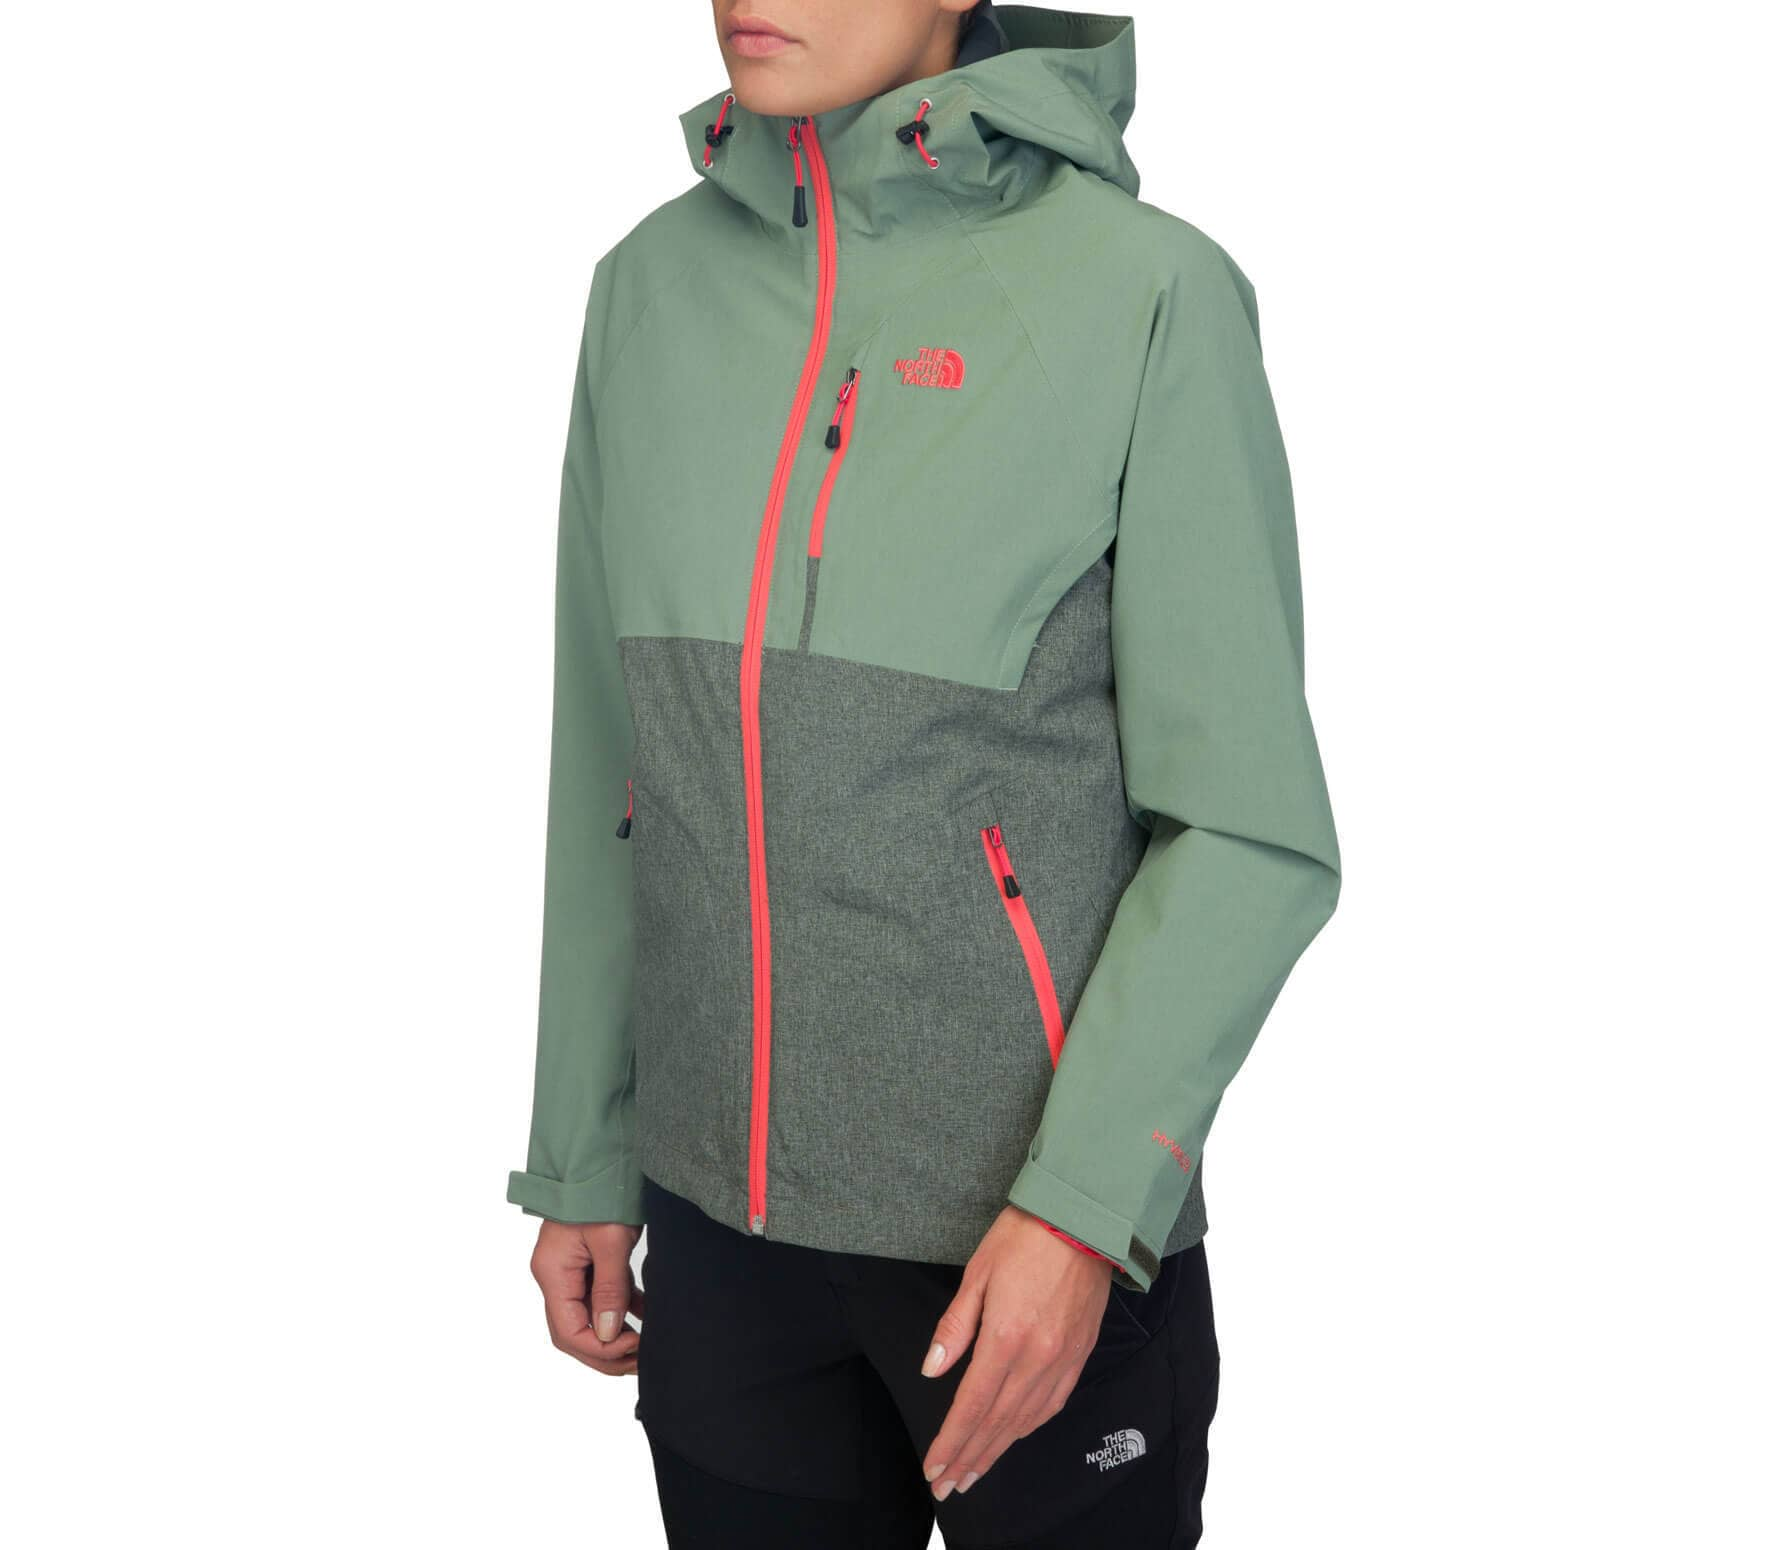 The North Face - Thermoball Triclimate Donna giacca (verde) compra ... 49b7ddeaf22f